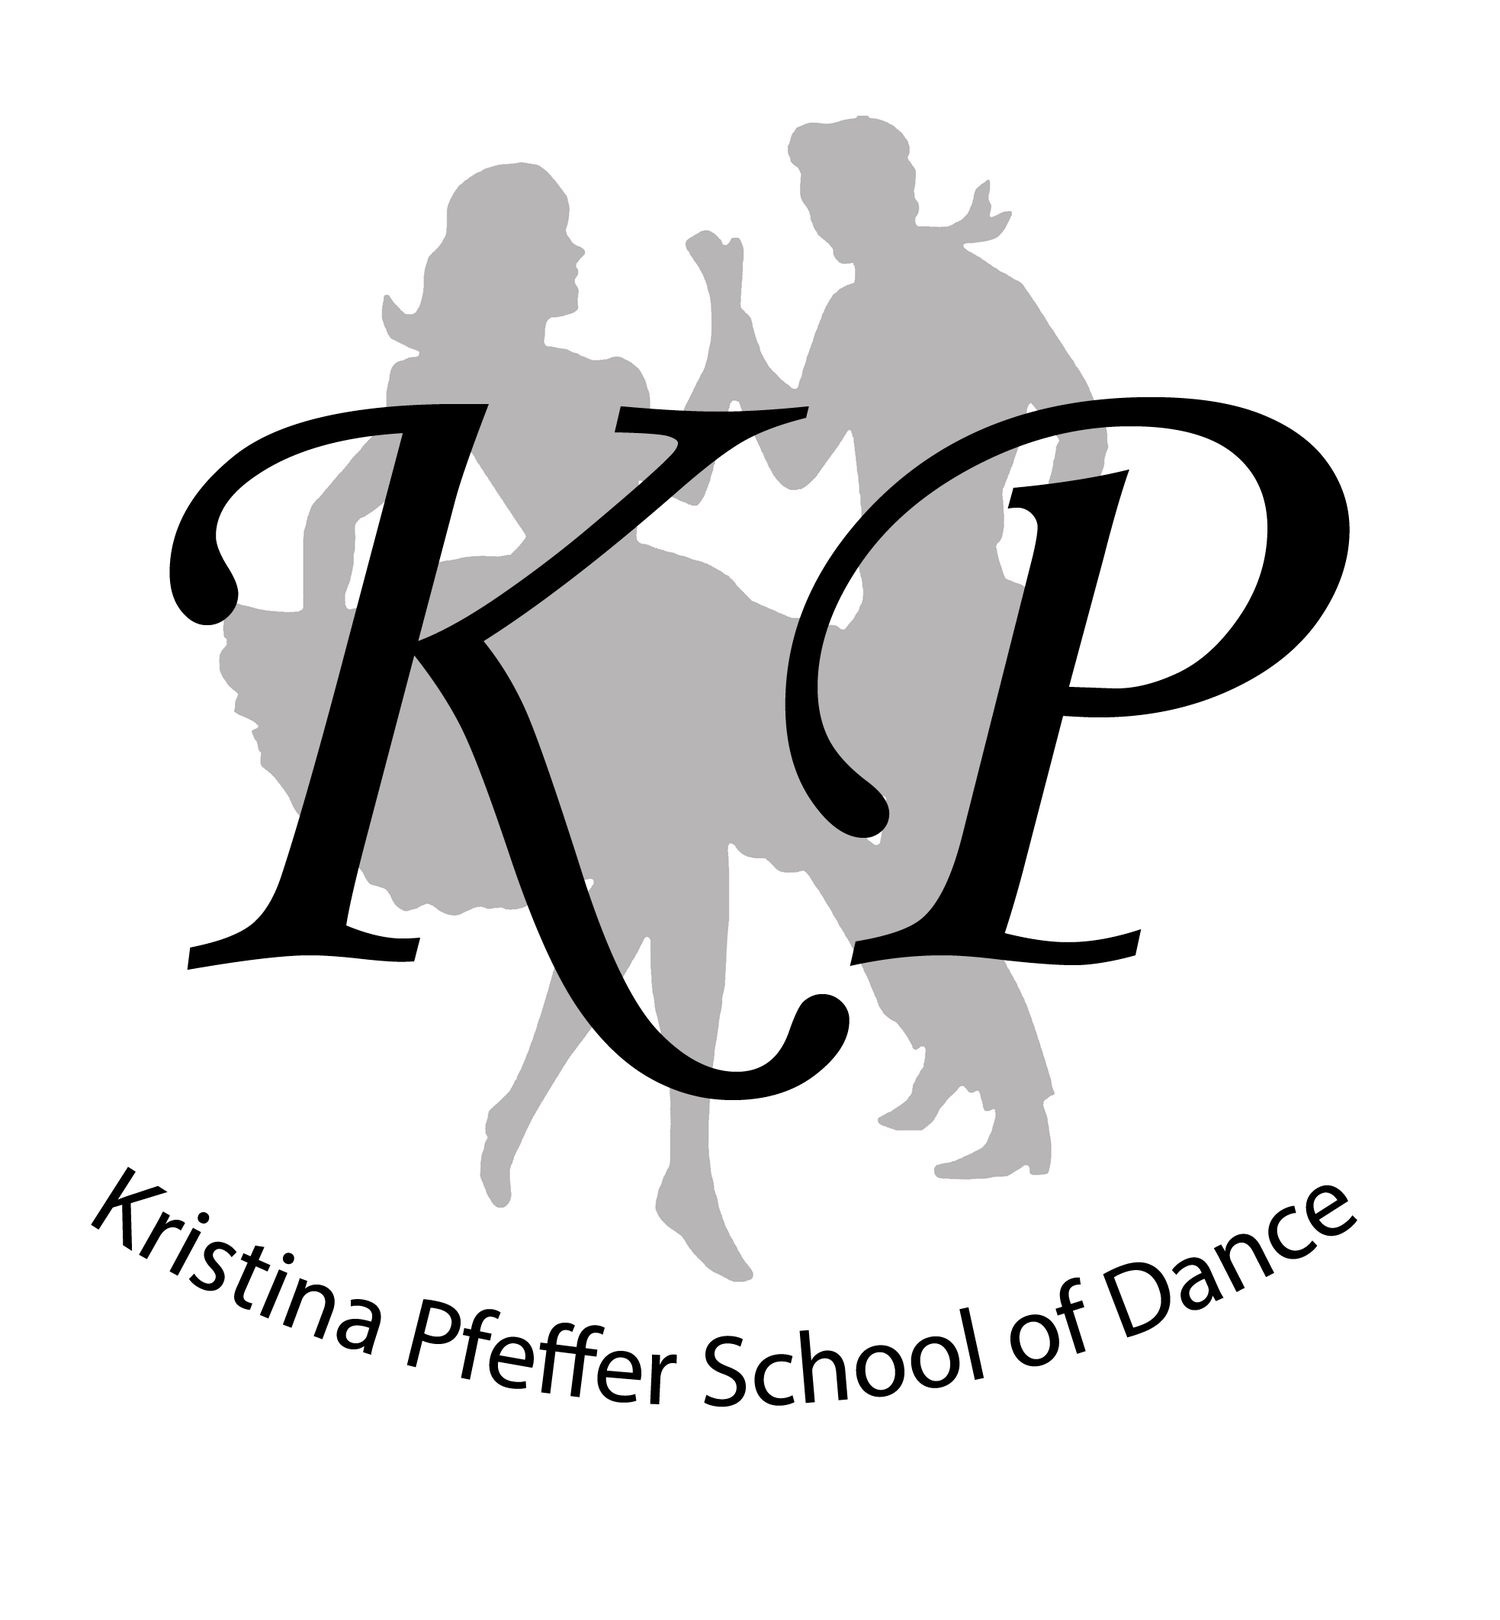 Kristina Pfeffer School of Dance